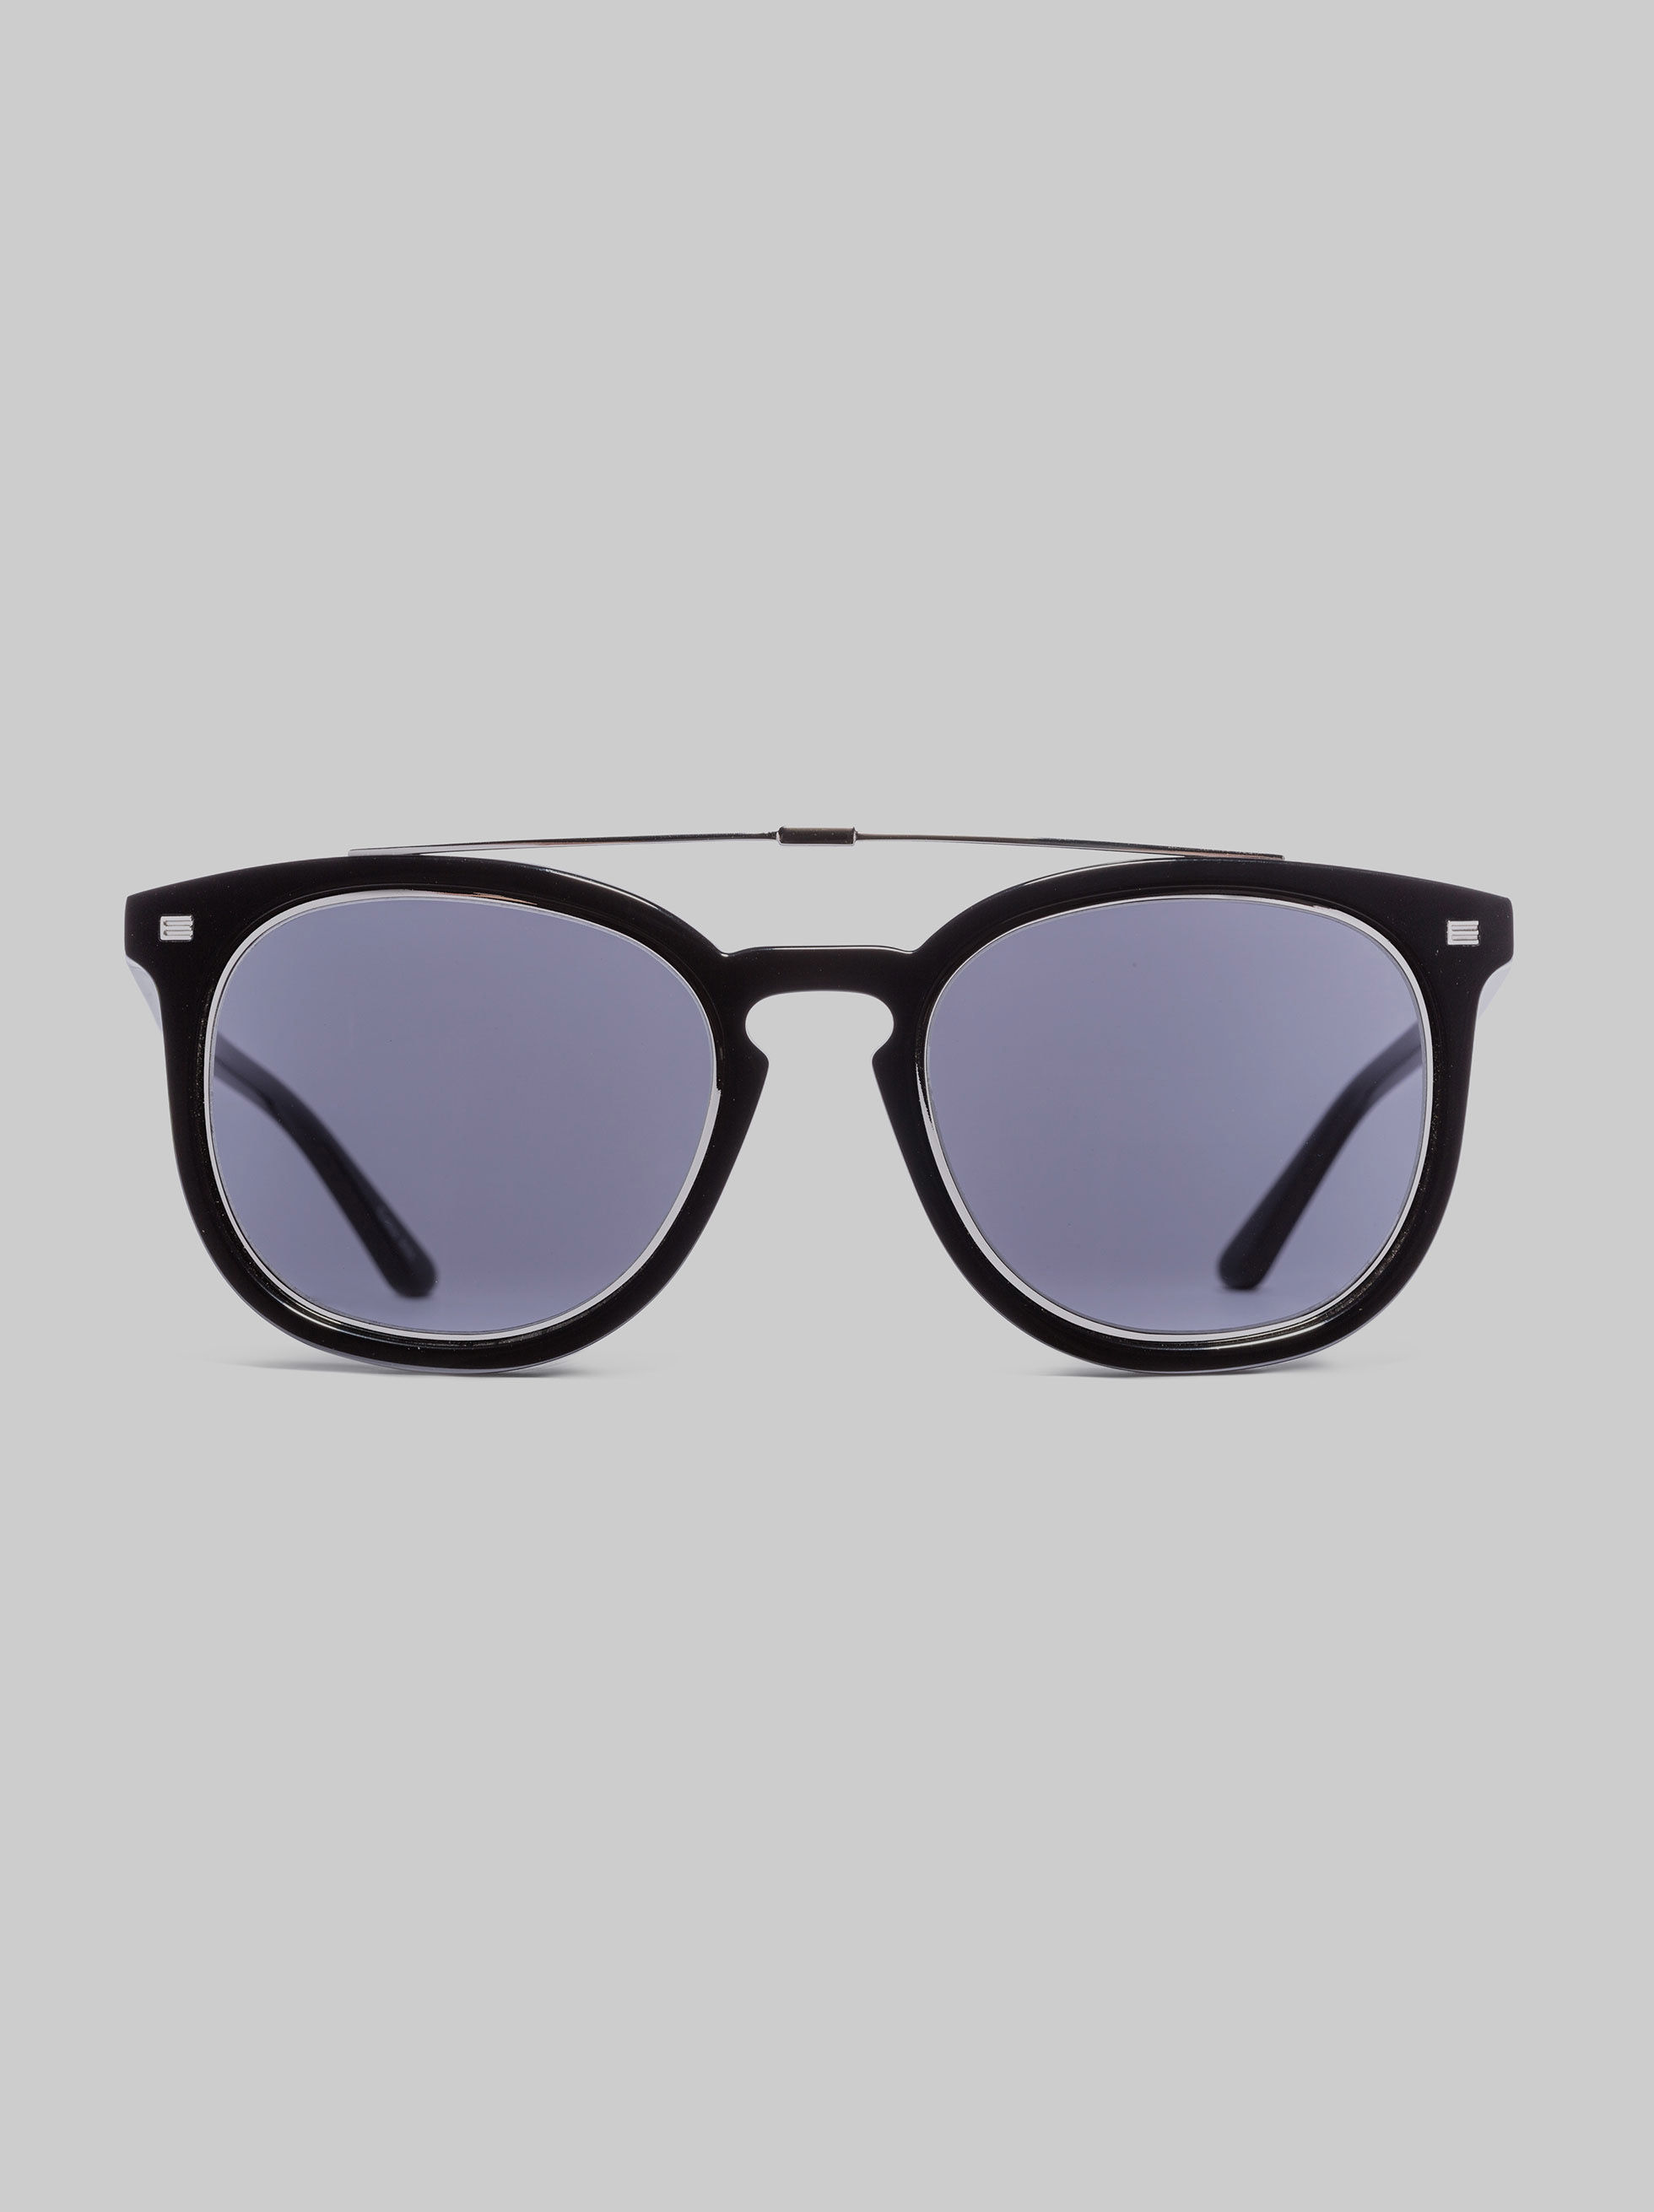 TEA-CUP FRAME SUNGLASSES WITH DOUBLE BRIDGE